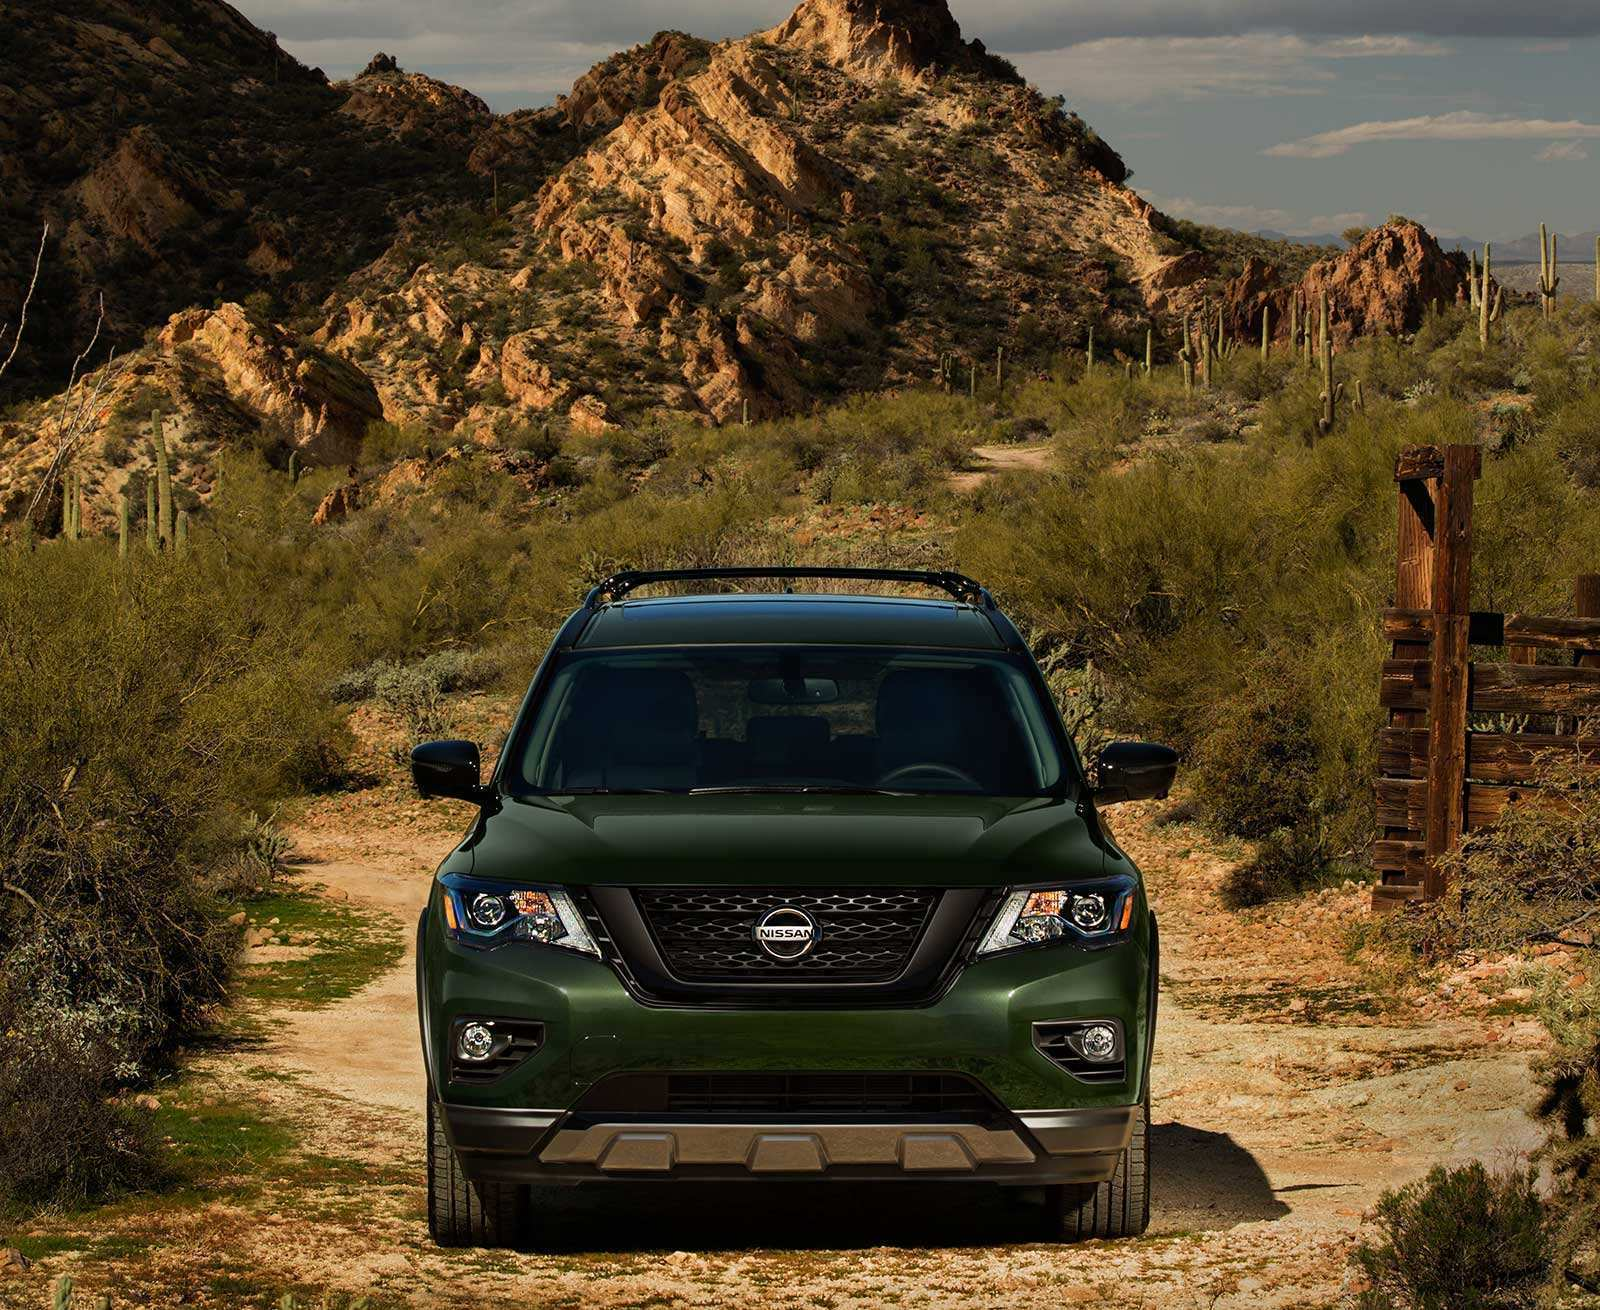 86 All New 2020 Nissan Pathfinder History